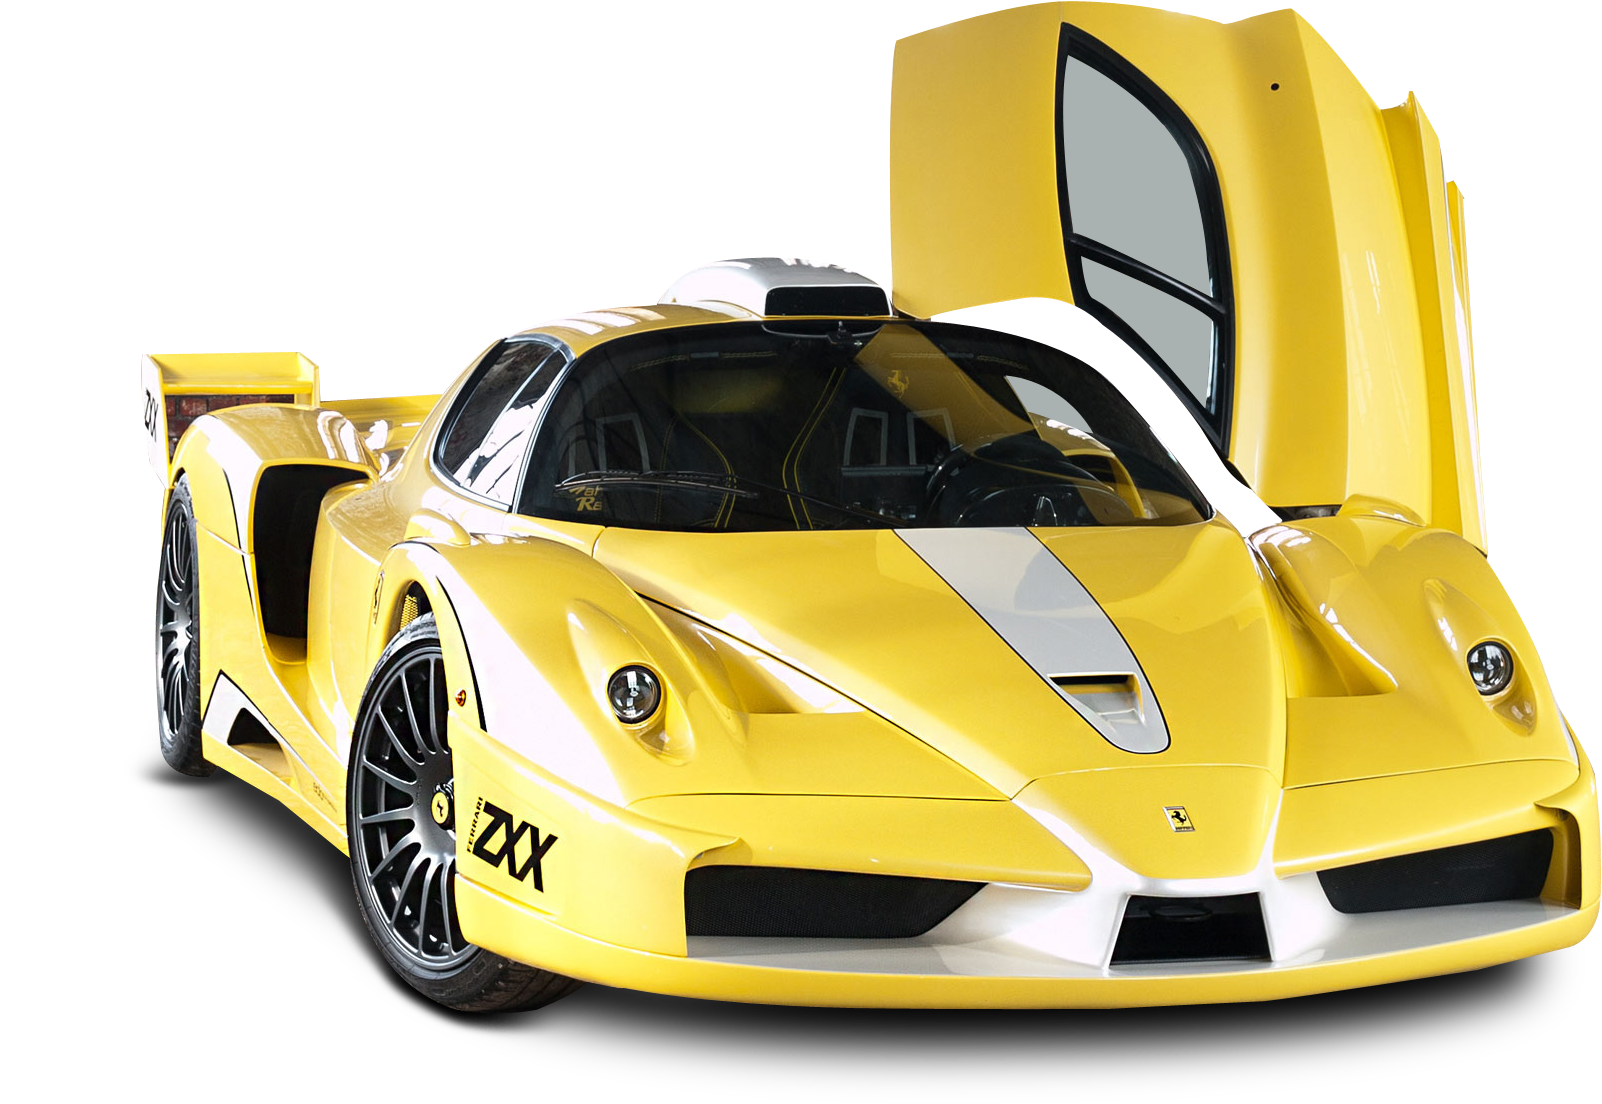 Download Yellow Ferrari Enzo Edo Car Png Image Maserati Mc12 In Yellow Png Image With No Background Pngkey Com